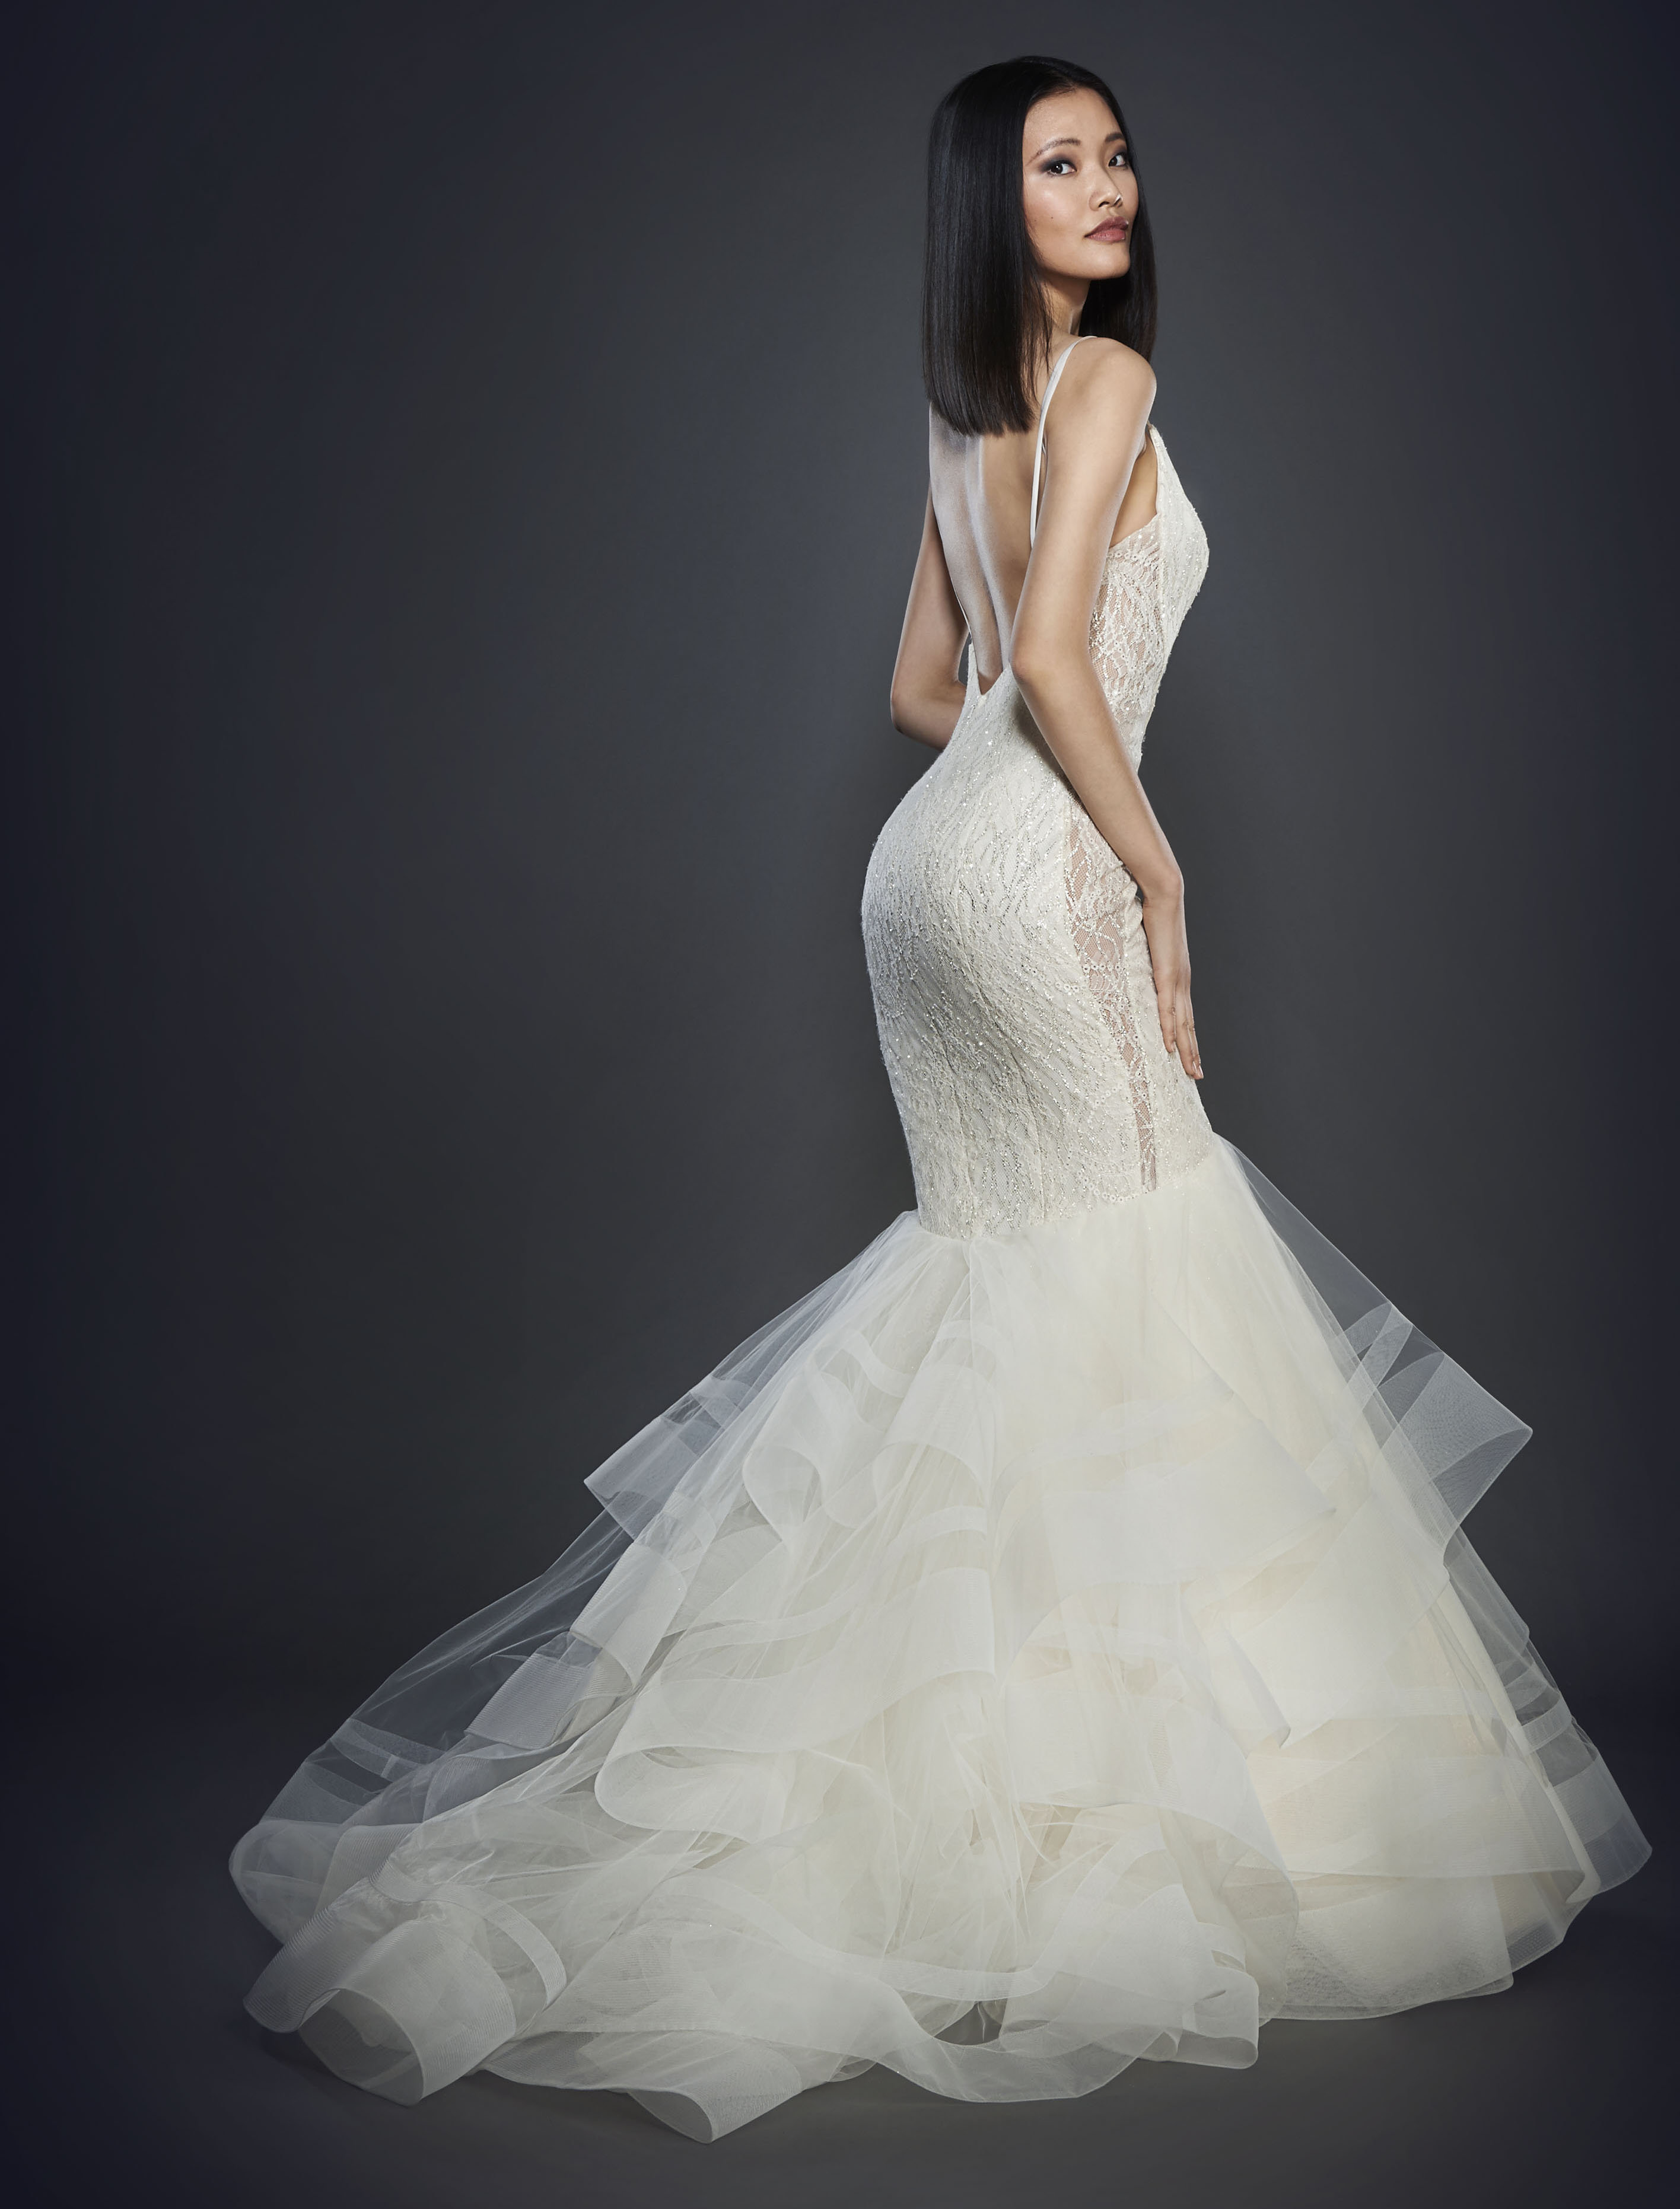 Bridal Gowns and Wedding Dresses by JLM Couture - Style 3704